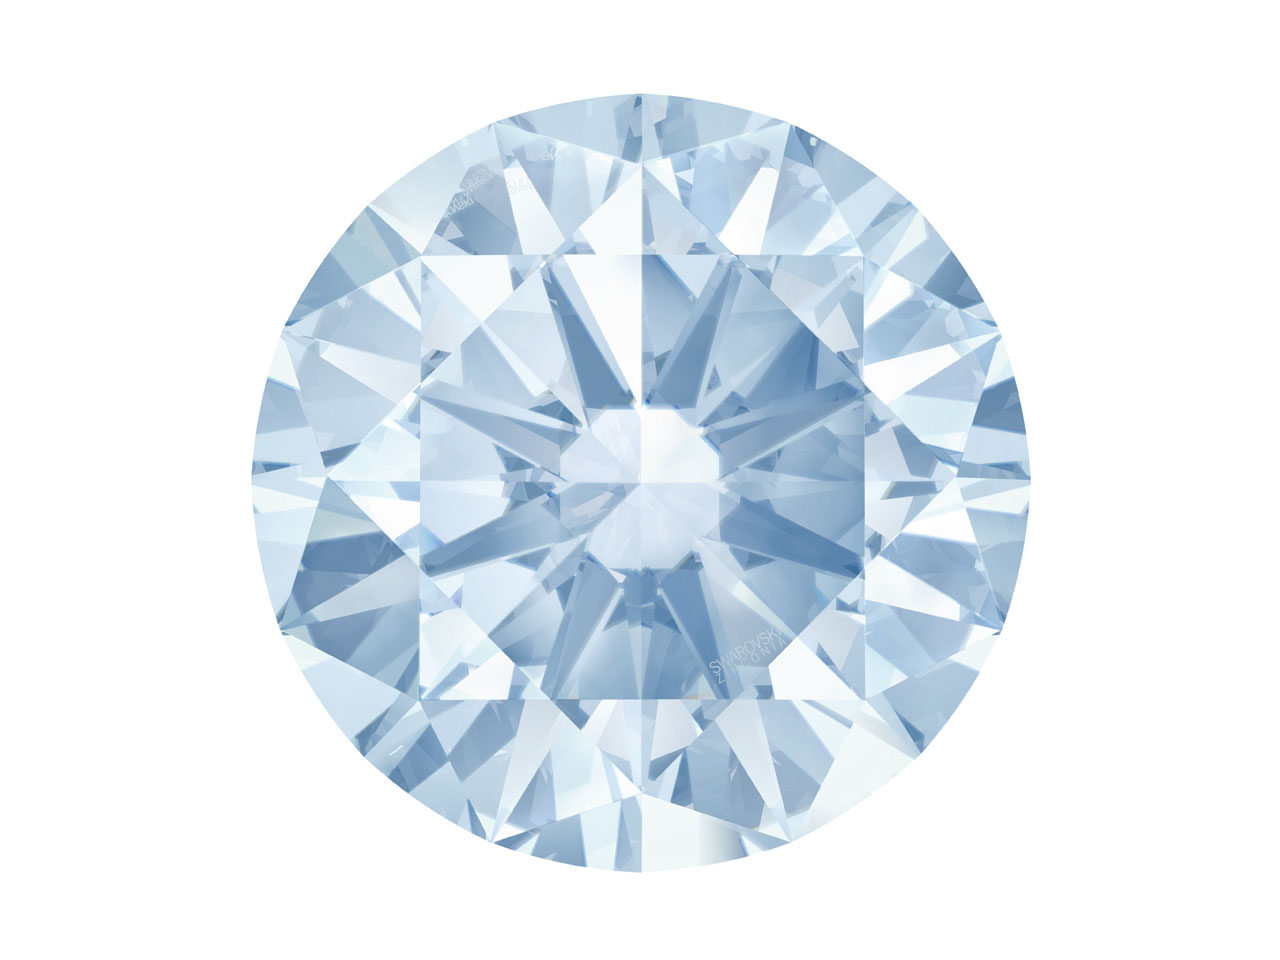 Swarovski Zirconia Round           Pure Brilliance Cut 3.0mm Greyish  Blue